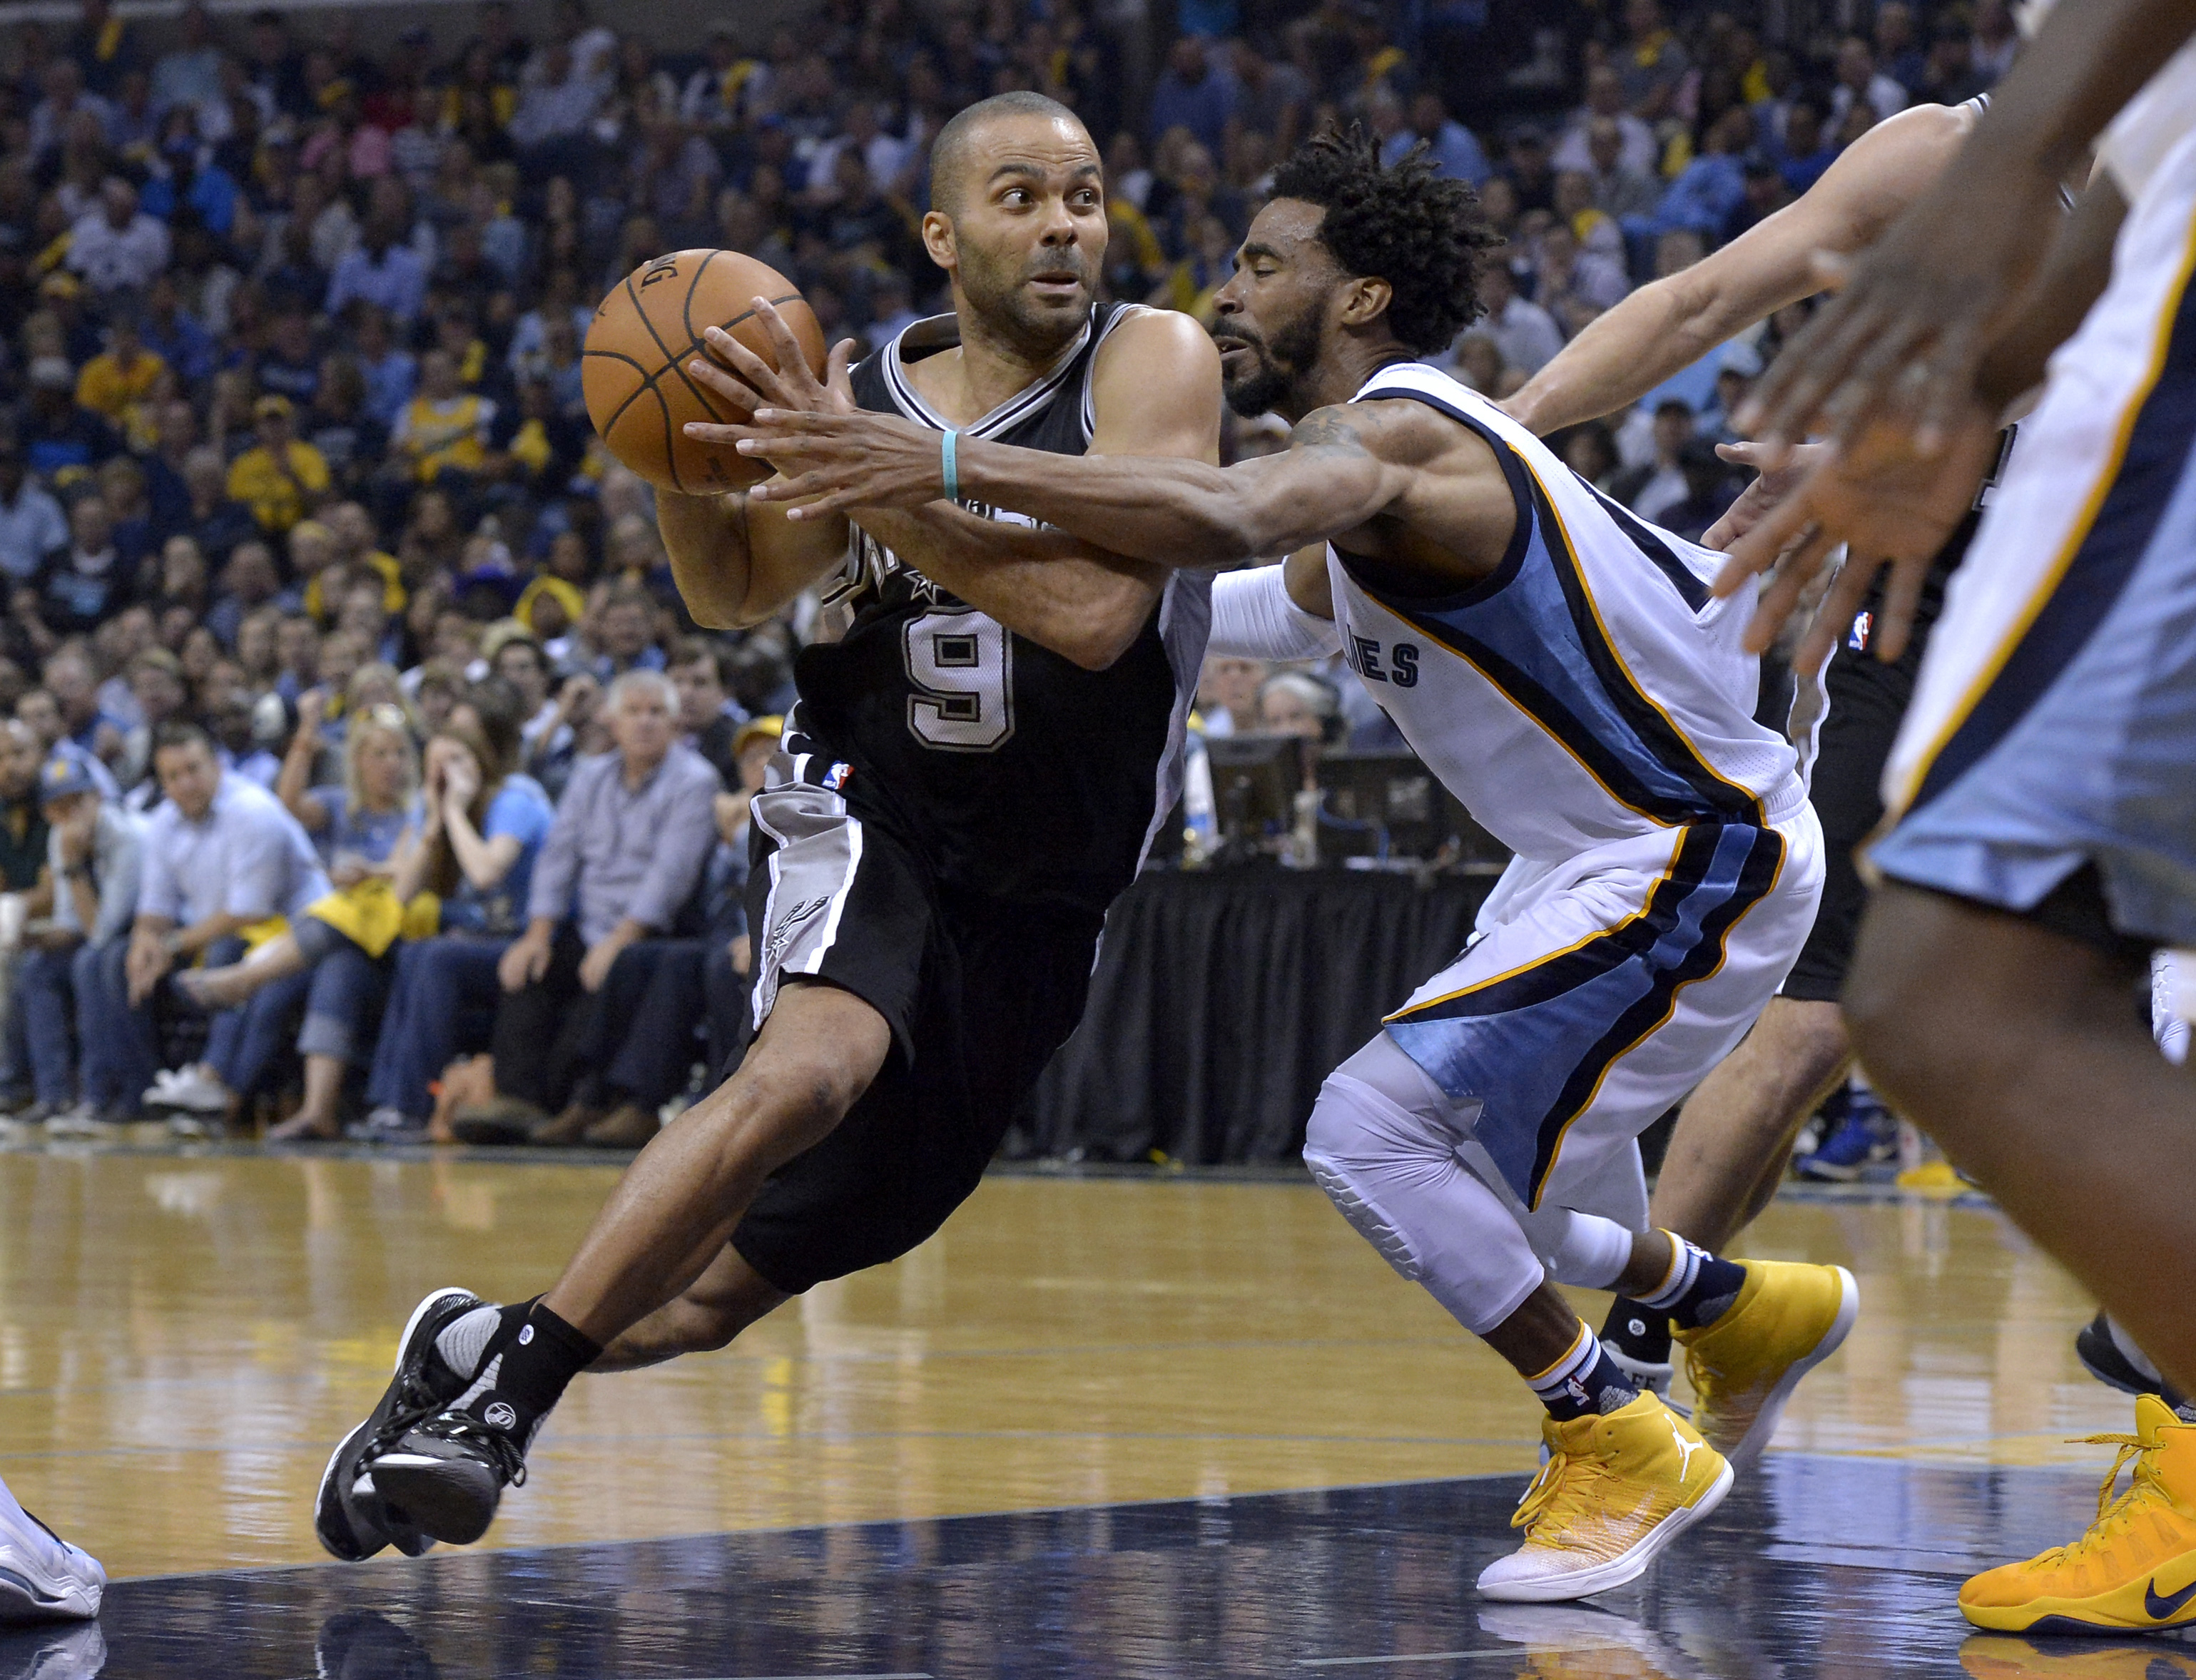 Basket - NBA - NBA : Un Tony Parker «vintage» guide les Spurs au 2e tour des play-offs